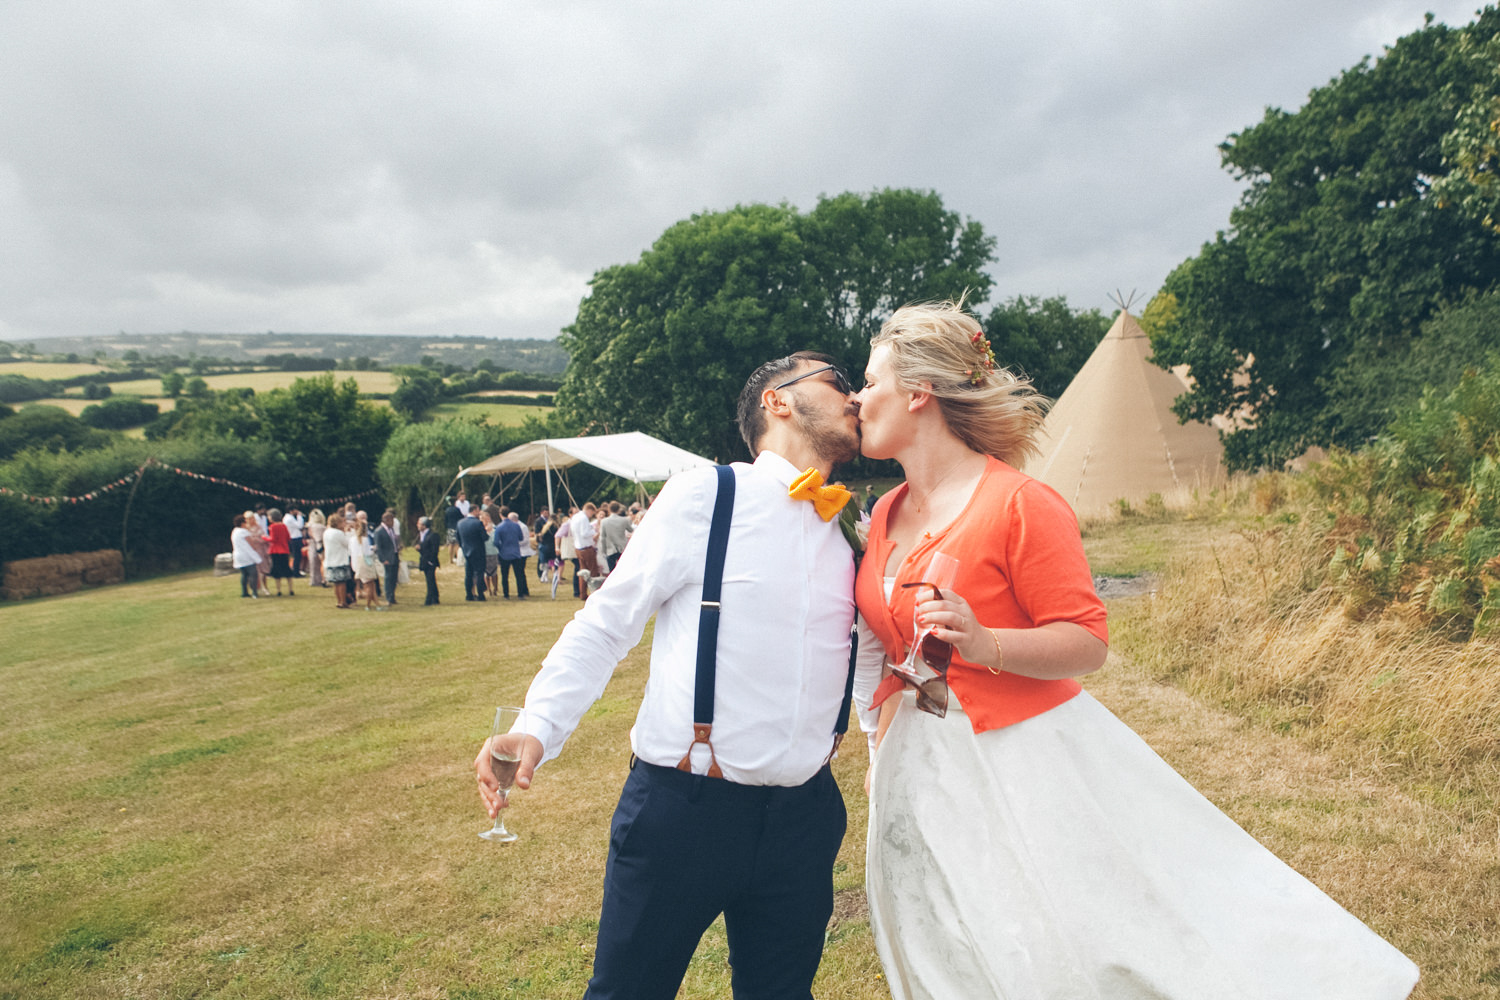 Lara & Atilla's Burnicombe Farm Tipi Wedding. This was a really colourful, outdoor wedding with an eclectic bunch of people - Atilla's Turish family and London hipsters. The wedding ceremony was held outside then people moved into the tipi as the storm clouds gathered.